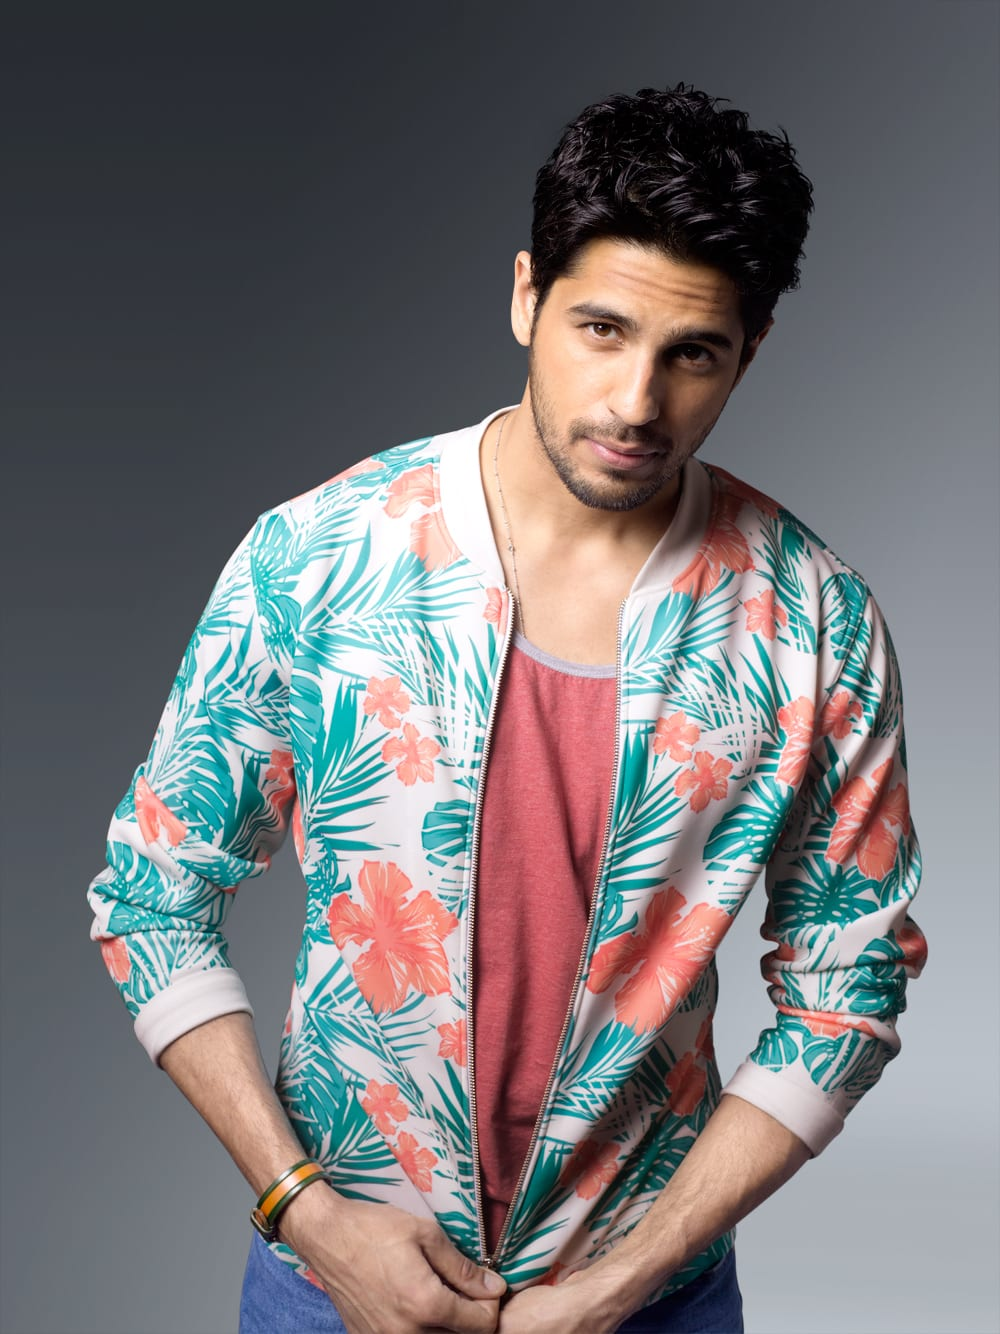 American Swan's top 5 looks by Sidharth